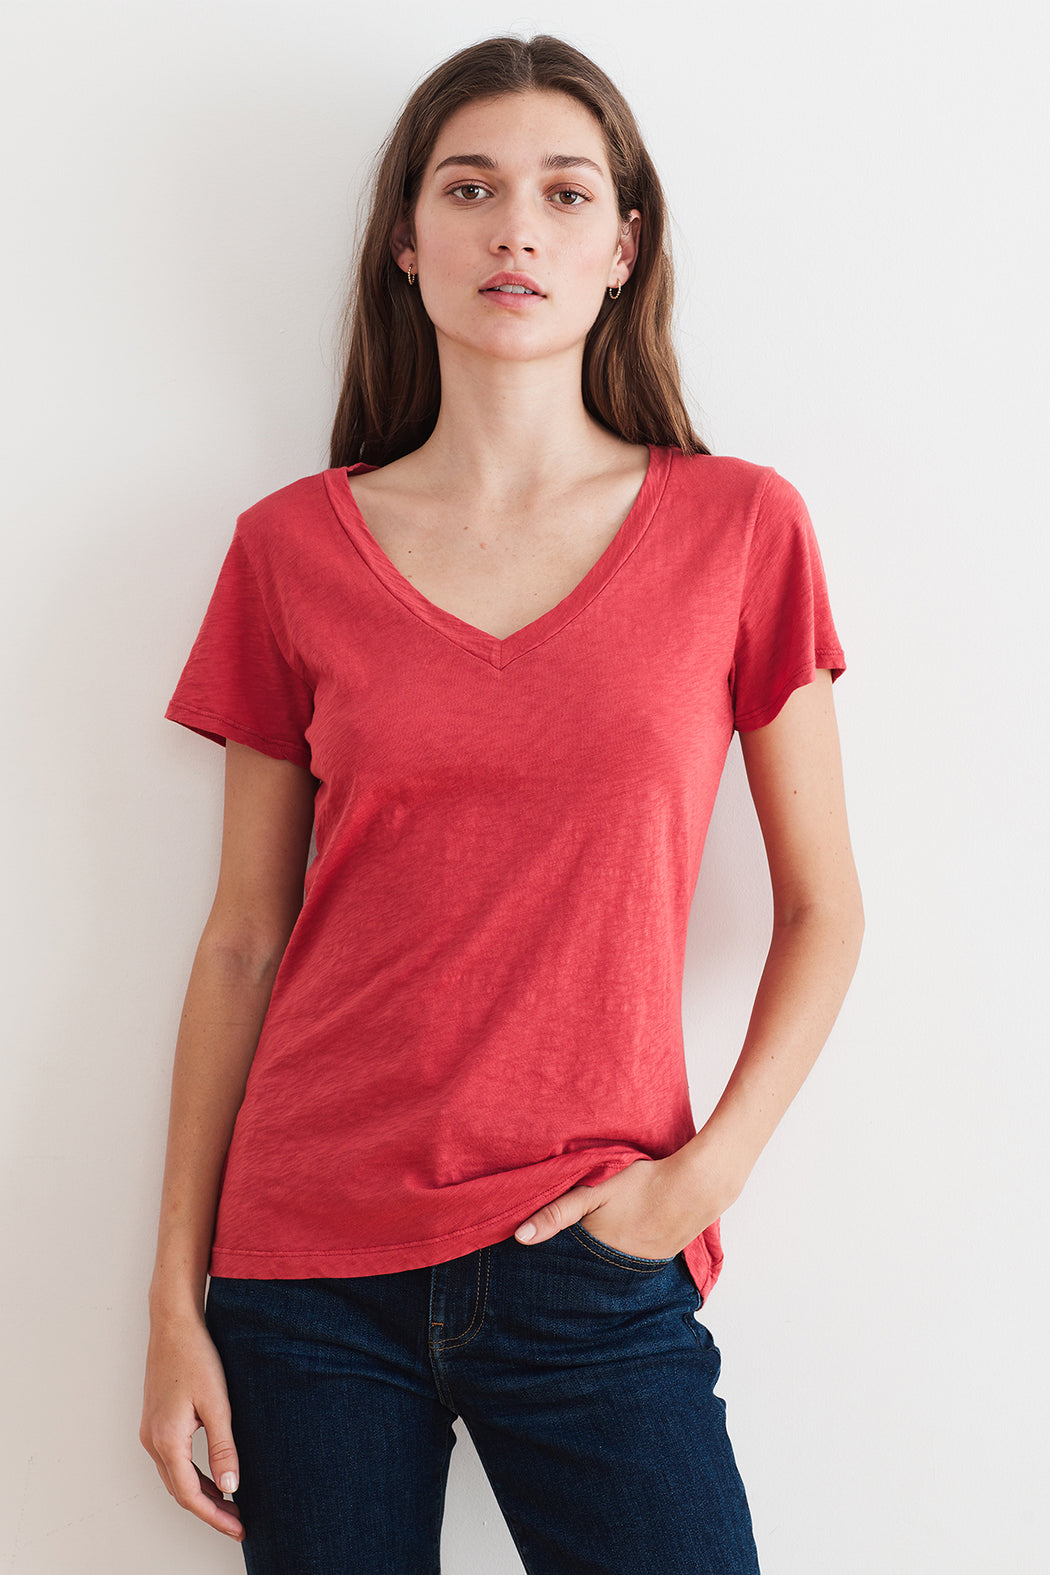 Velvet by Graham & Spencer Lilith Cotton Slub V-Neck Tee in Blossom